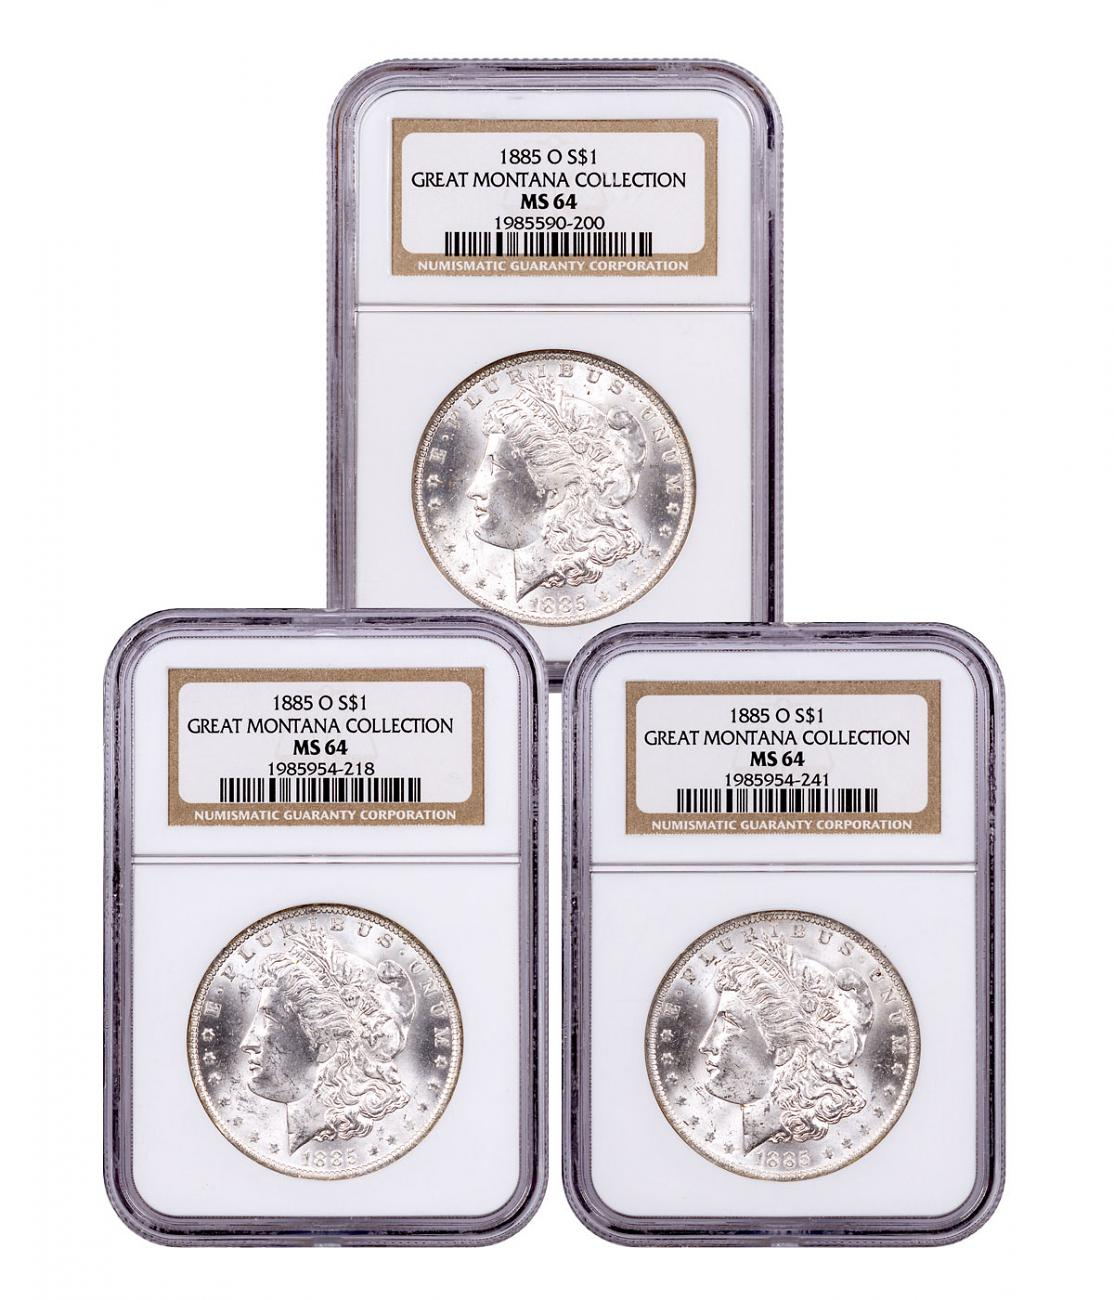 3-Coin Set - 1885-O Morgan Silver Dollar From the Great Montana Collection NGC MS64 Toned CPCR 0200